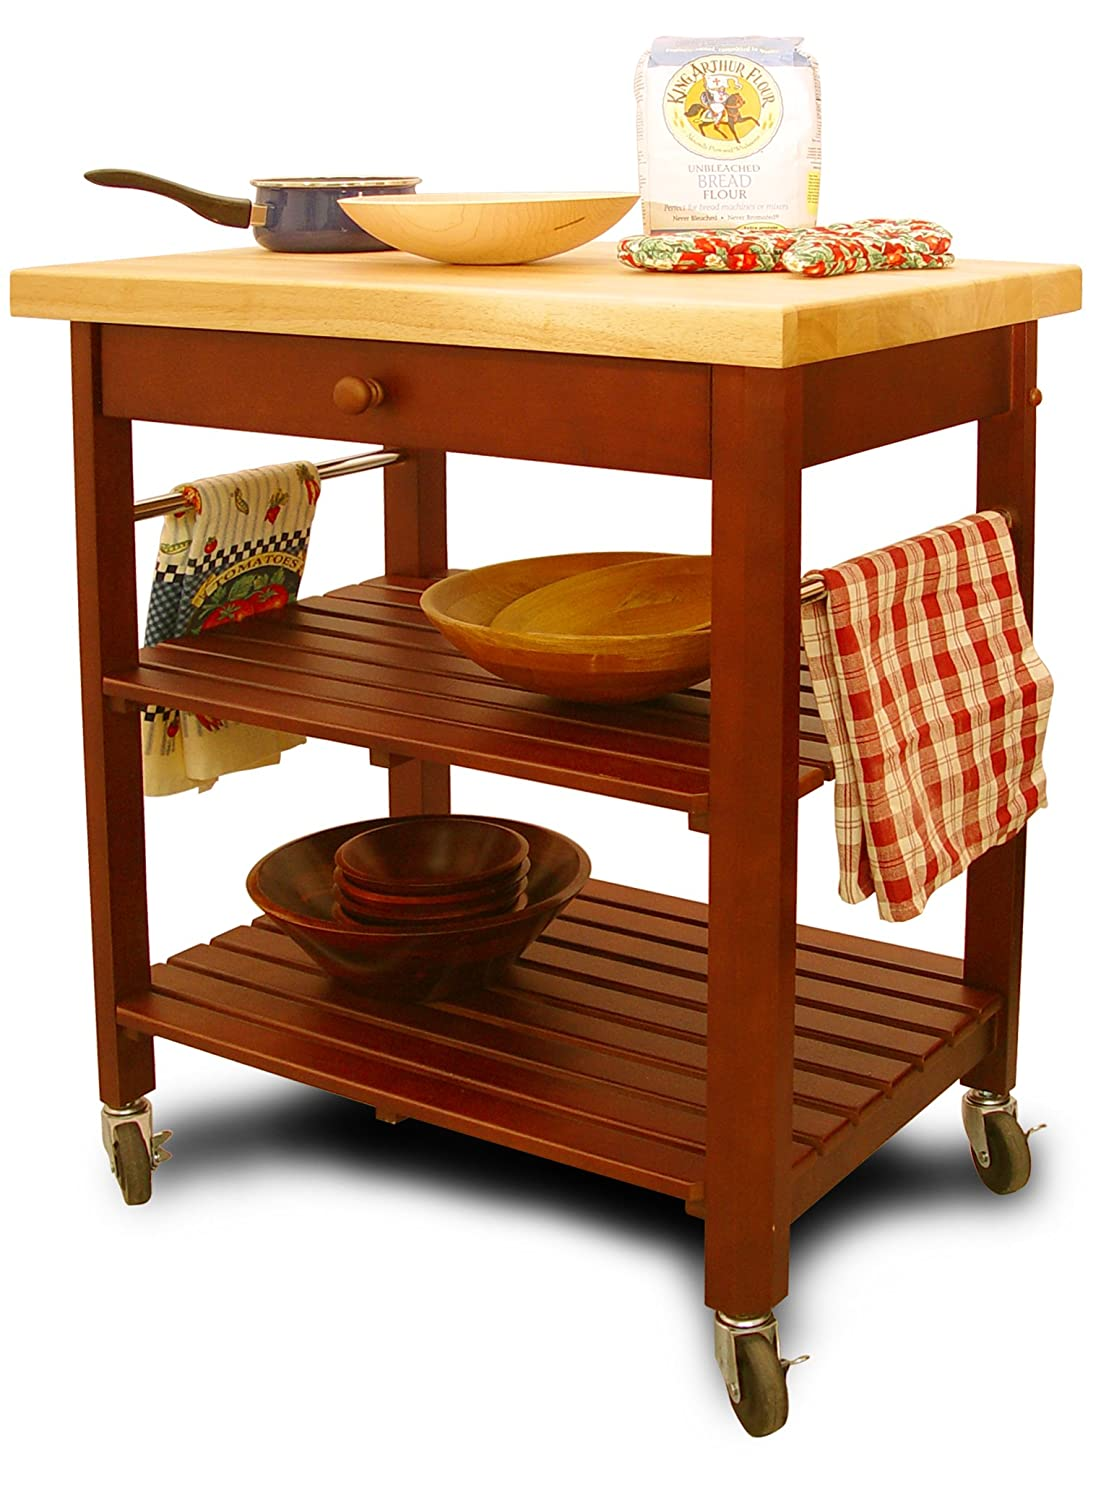 Amazon com catskill craftsmen kitchen roll about cart bar serving carts